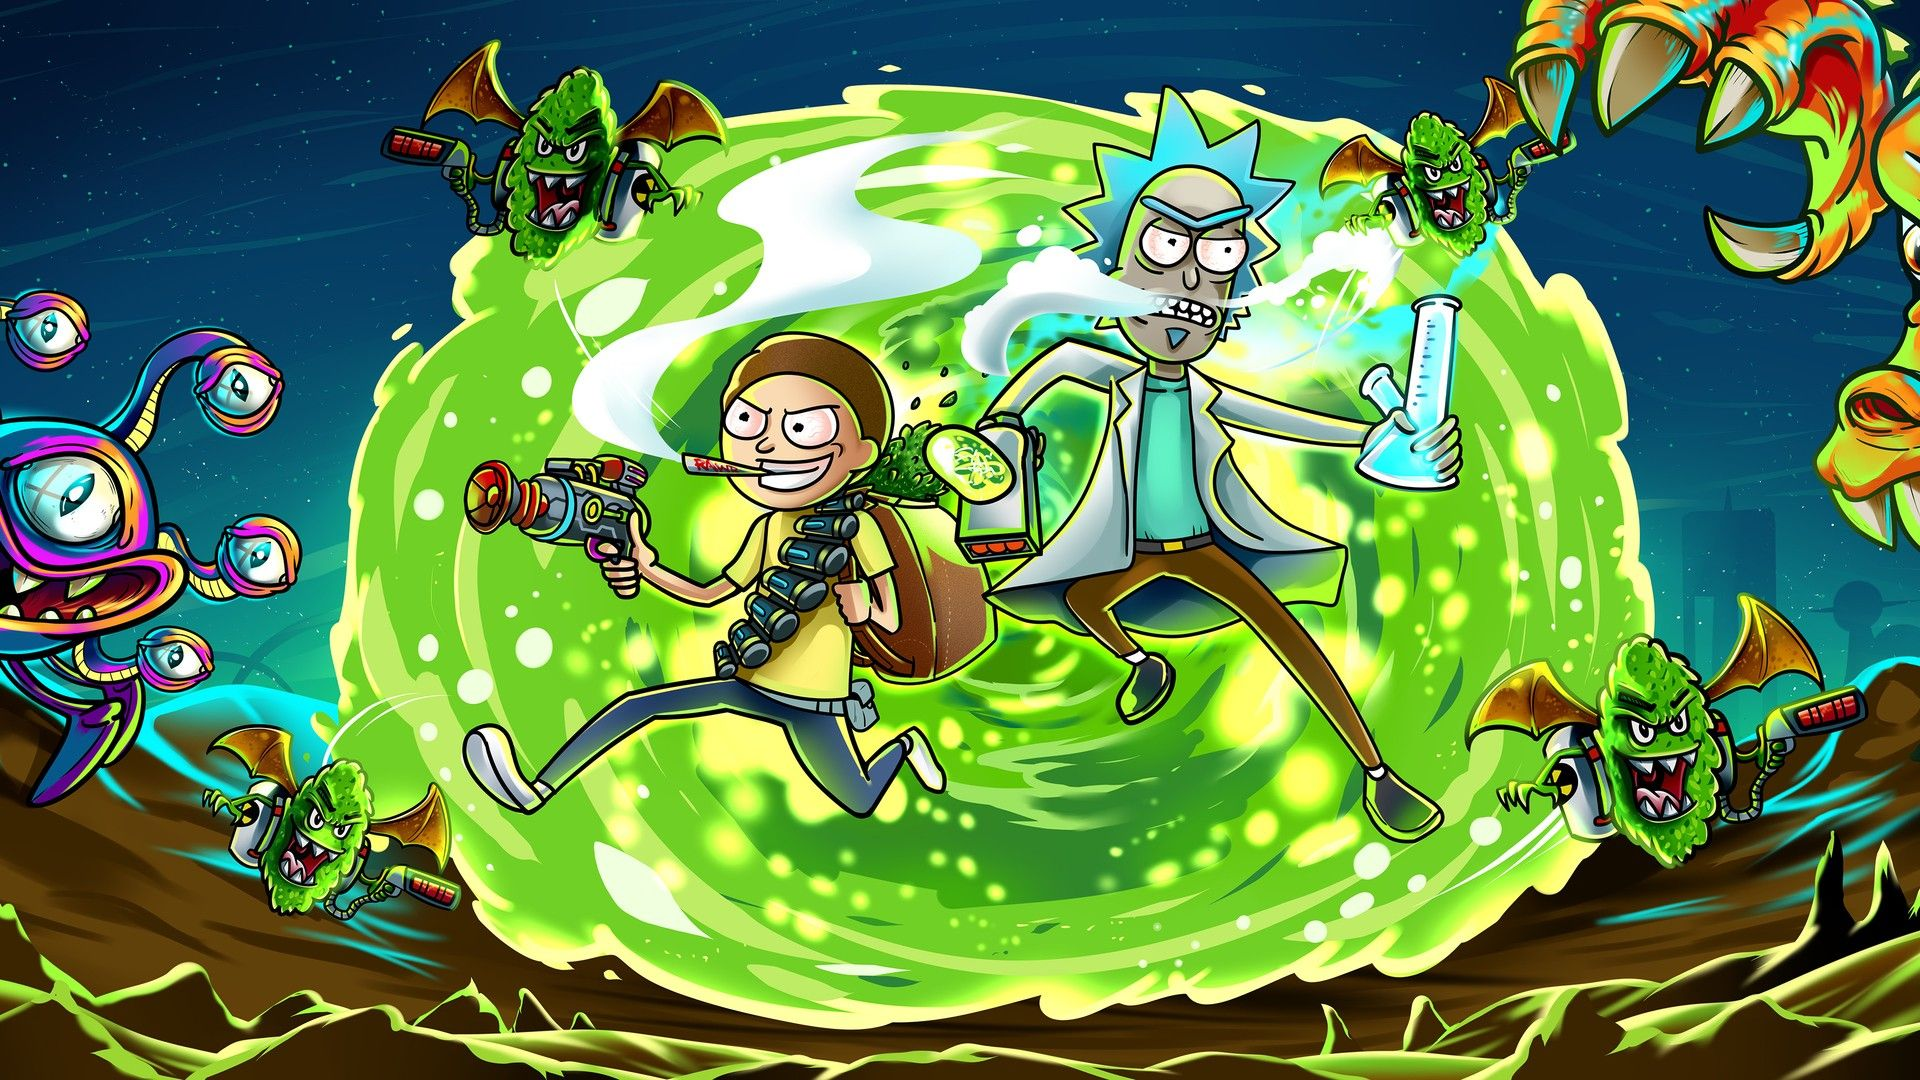 Movie Wallpaper Rick and Morty - Best Movie Poster ...